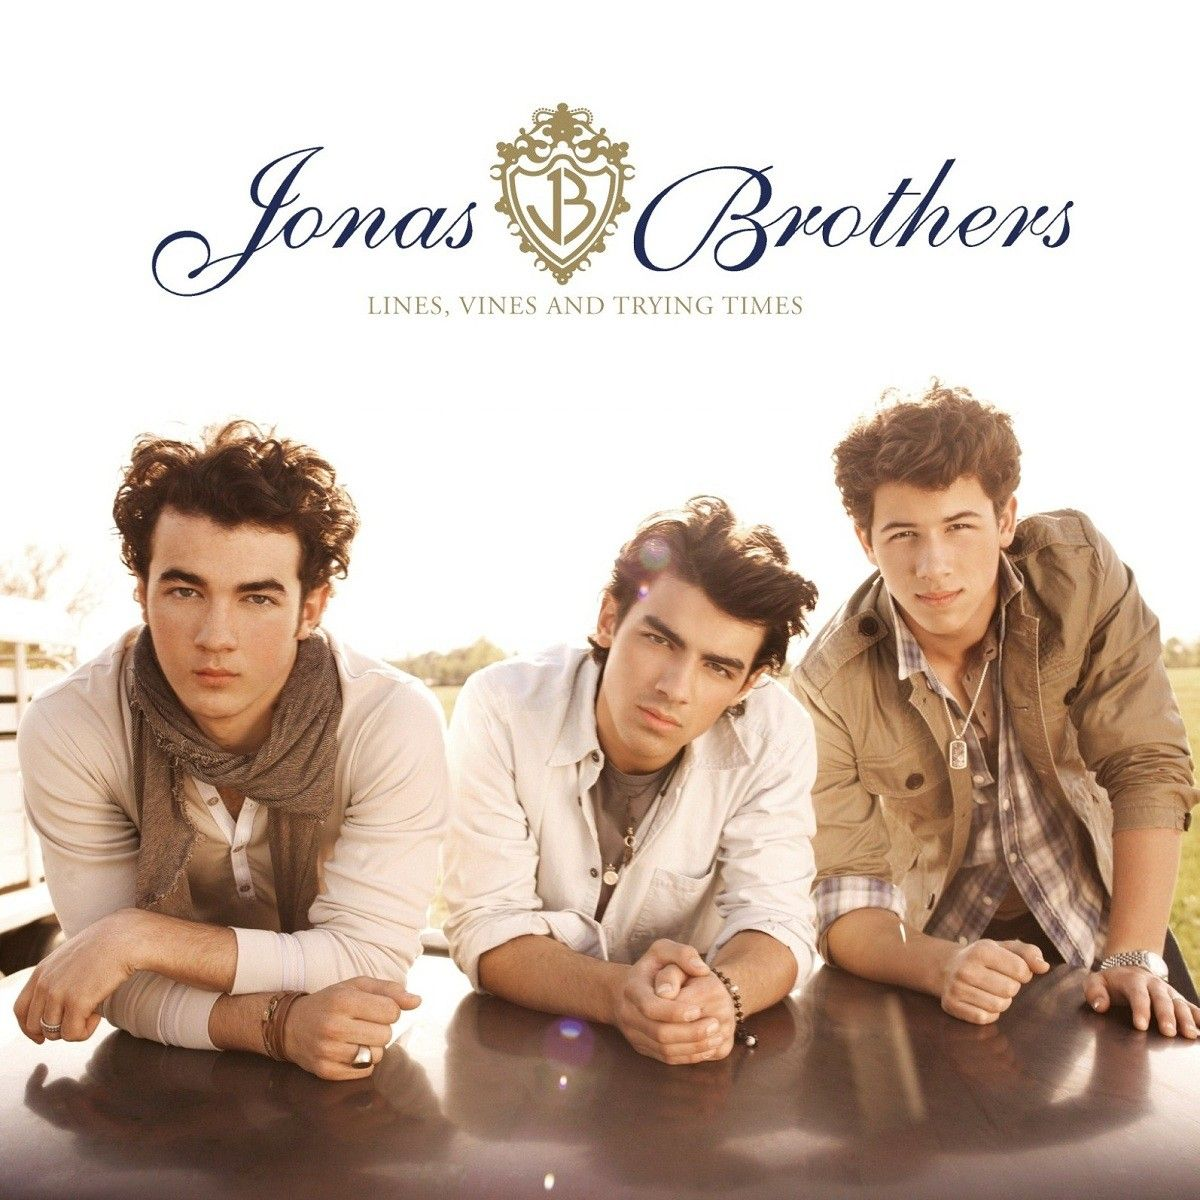 Jonas Brothers - Lines, Vines And Trying Times album cover